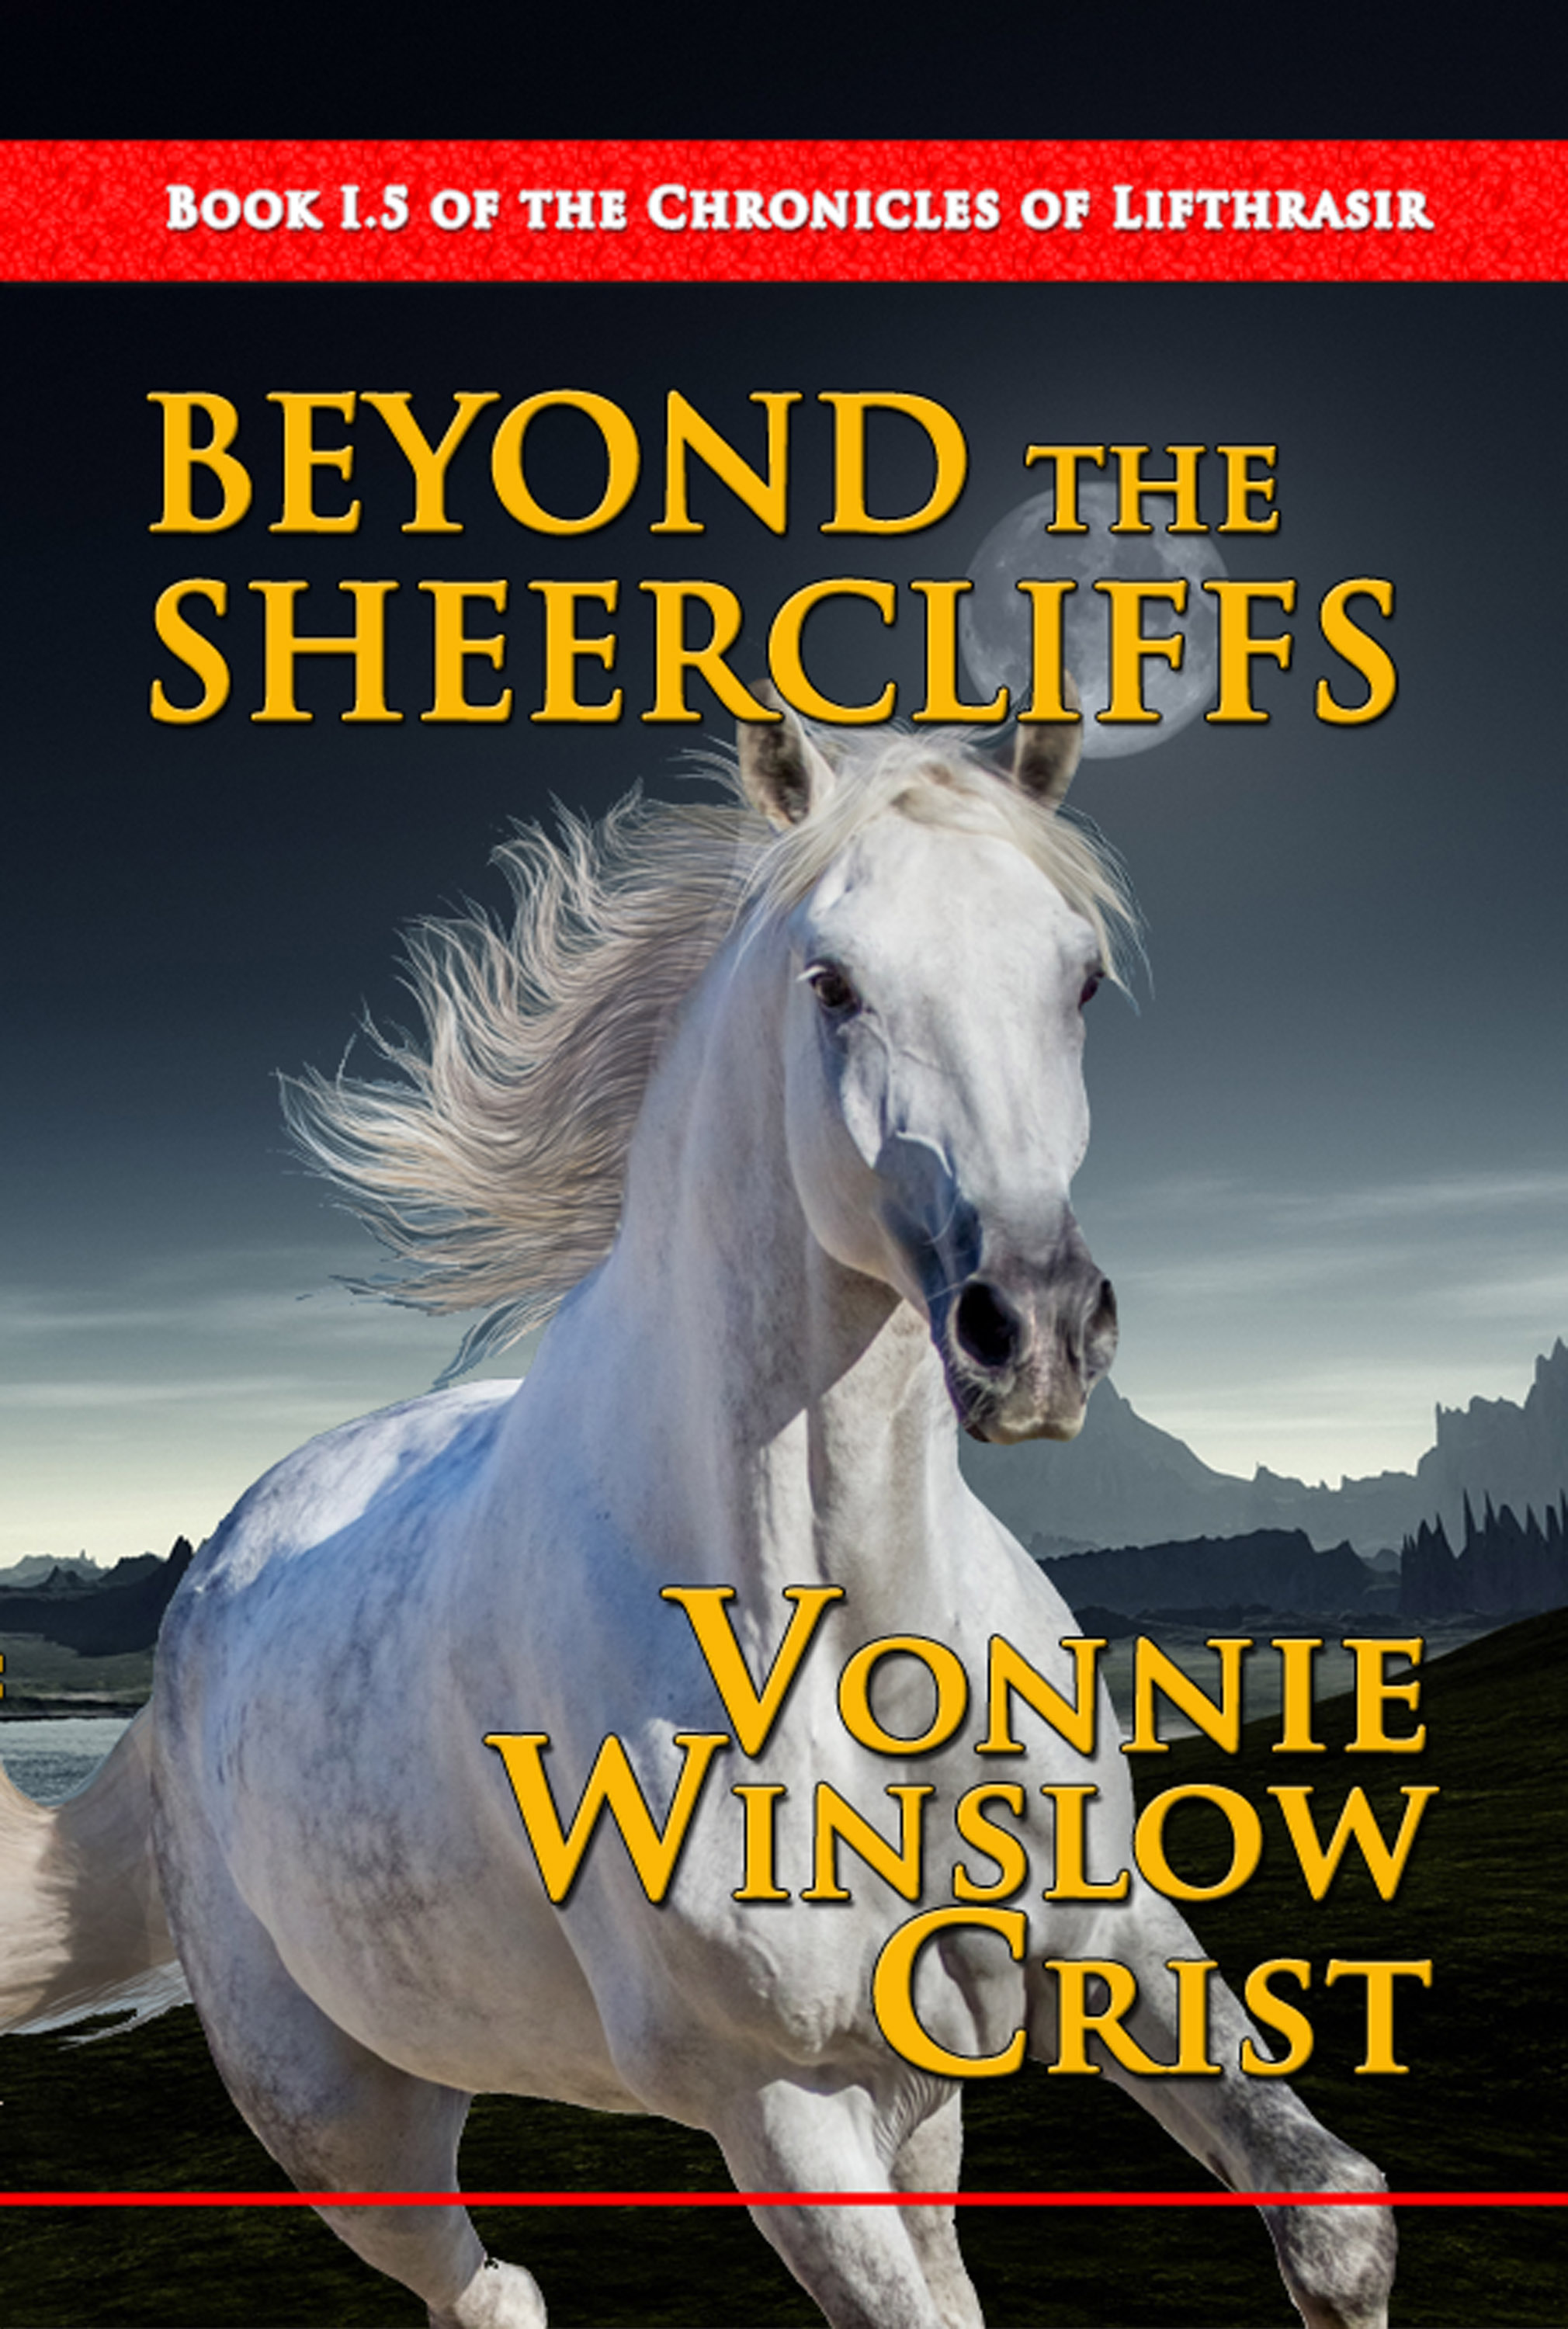 """Beyond the Sheercliffs"" by Vonnie Winslow Crist"